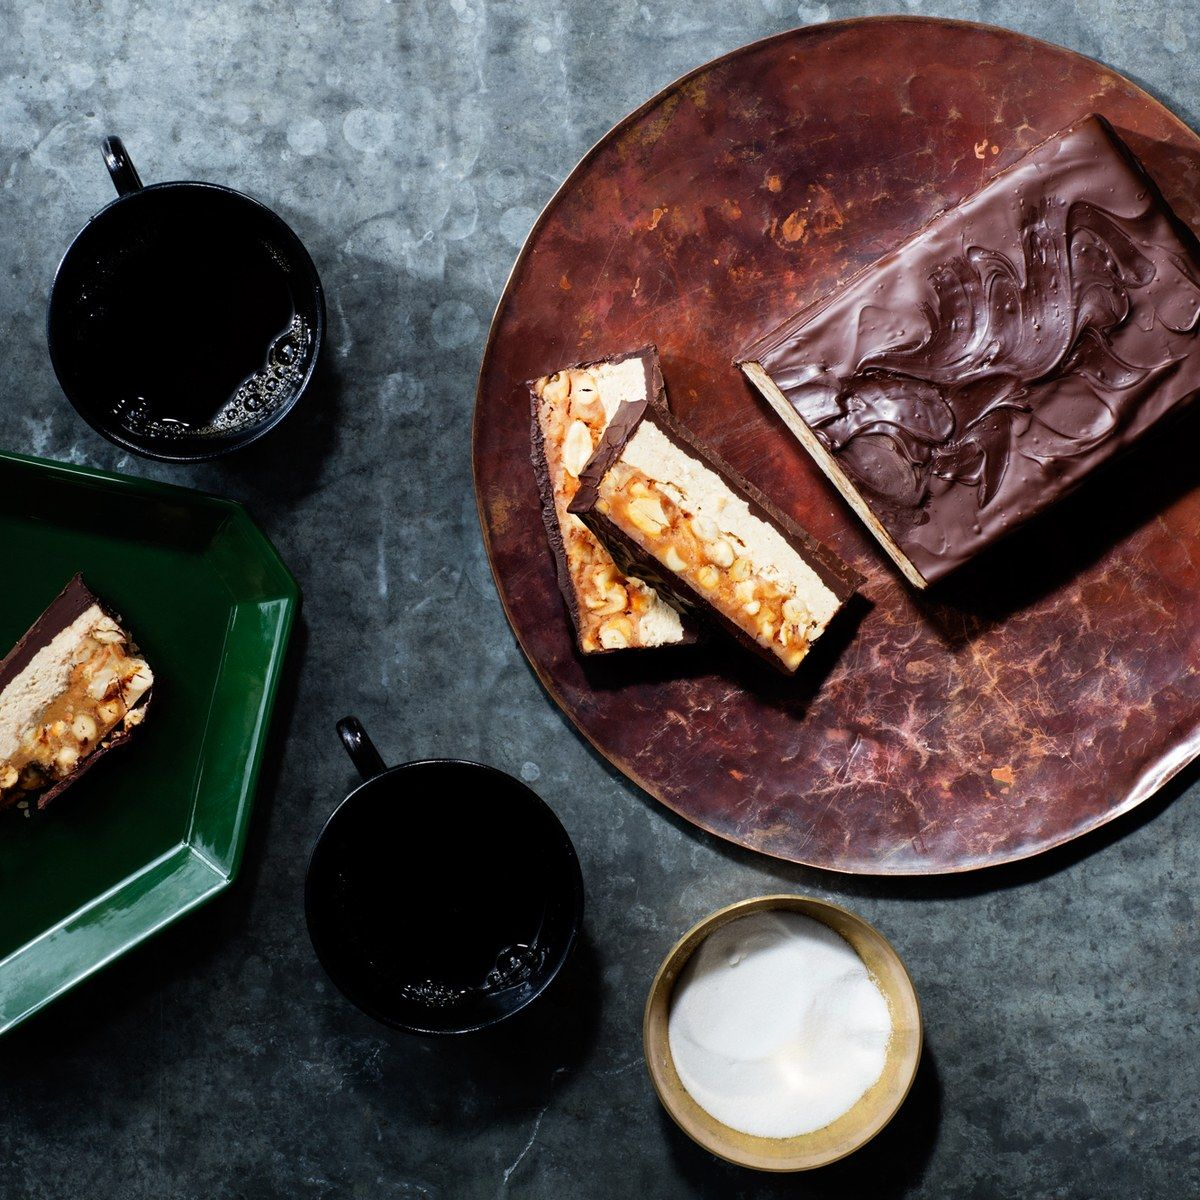 a7435c40f2e Our 41 Best Chocolate Dessert Recipes for Valentine s Day - Epicurious